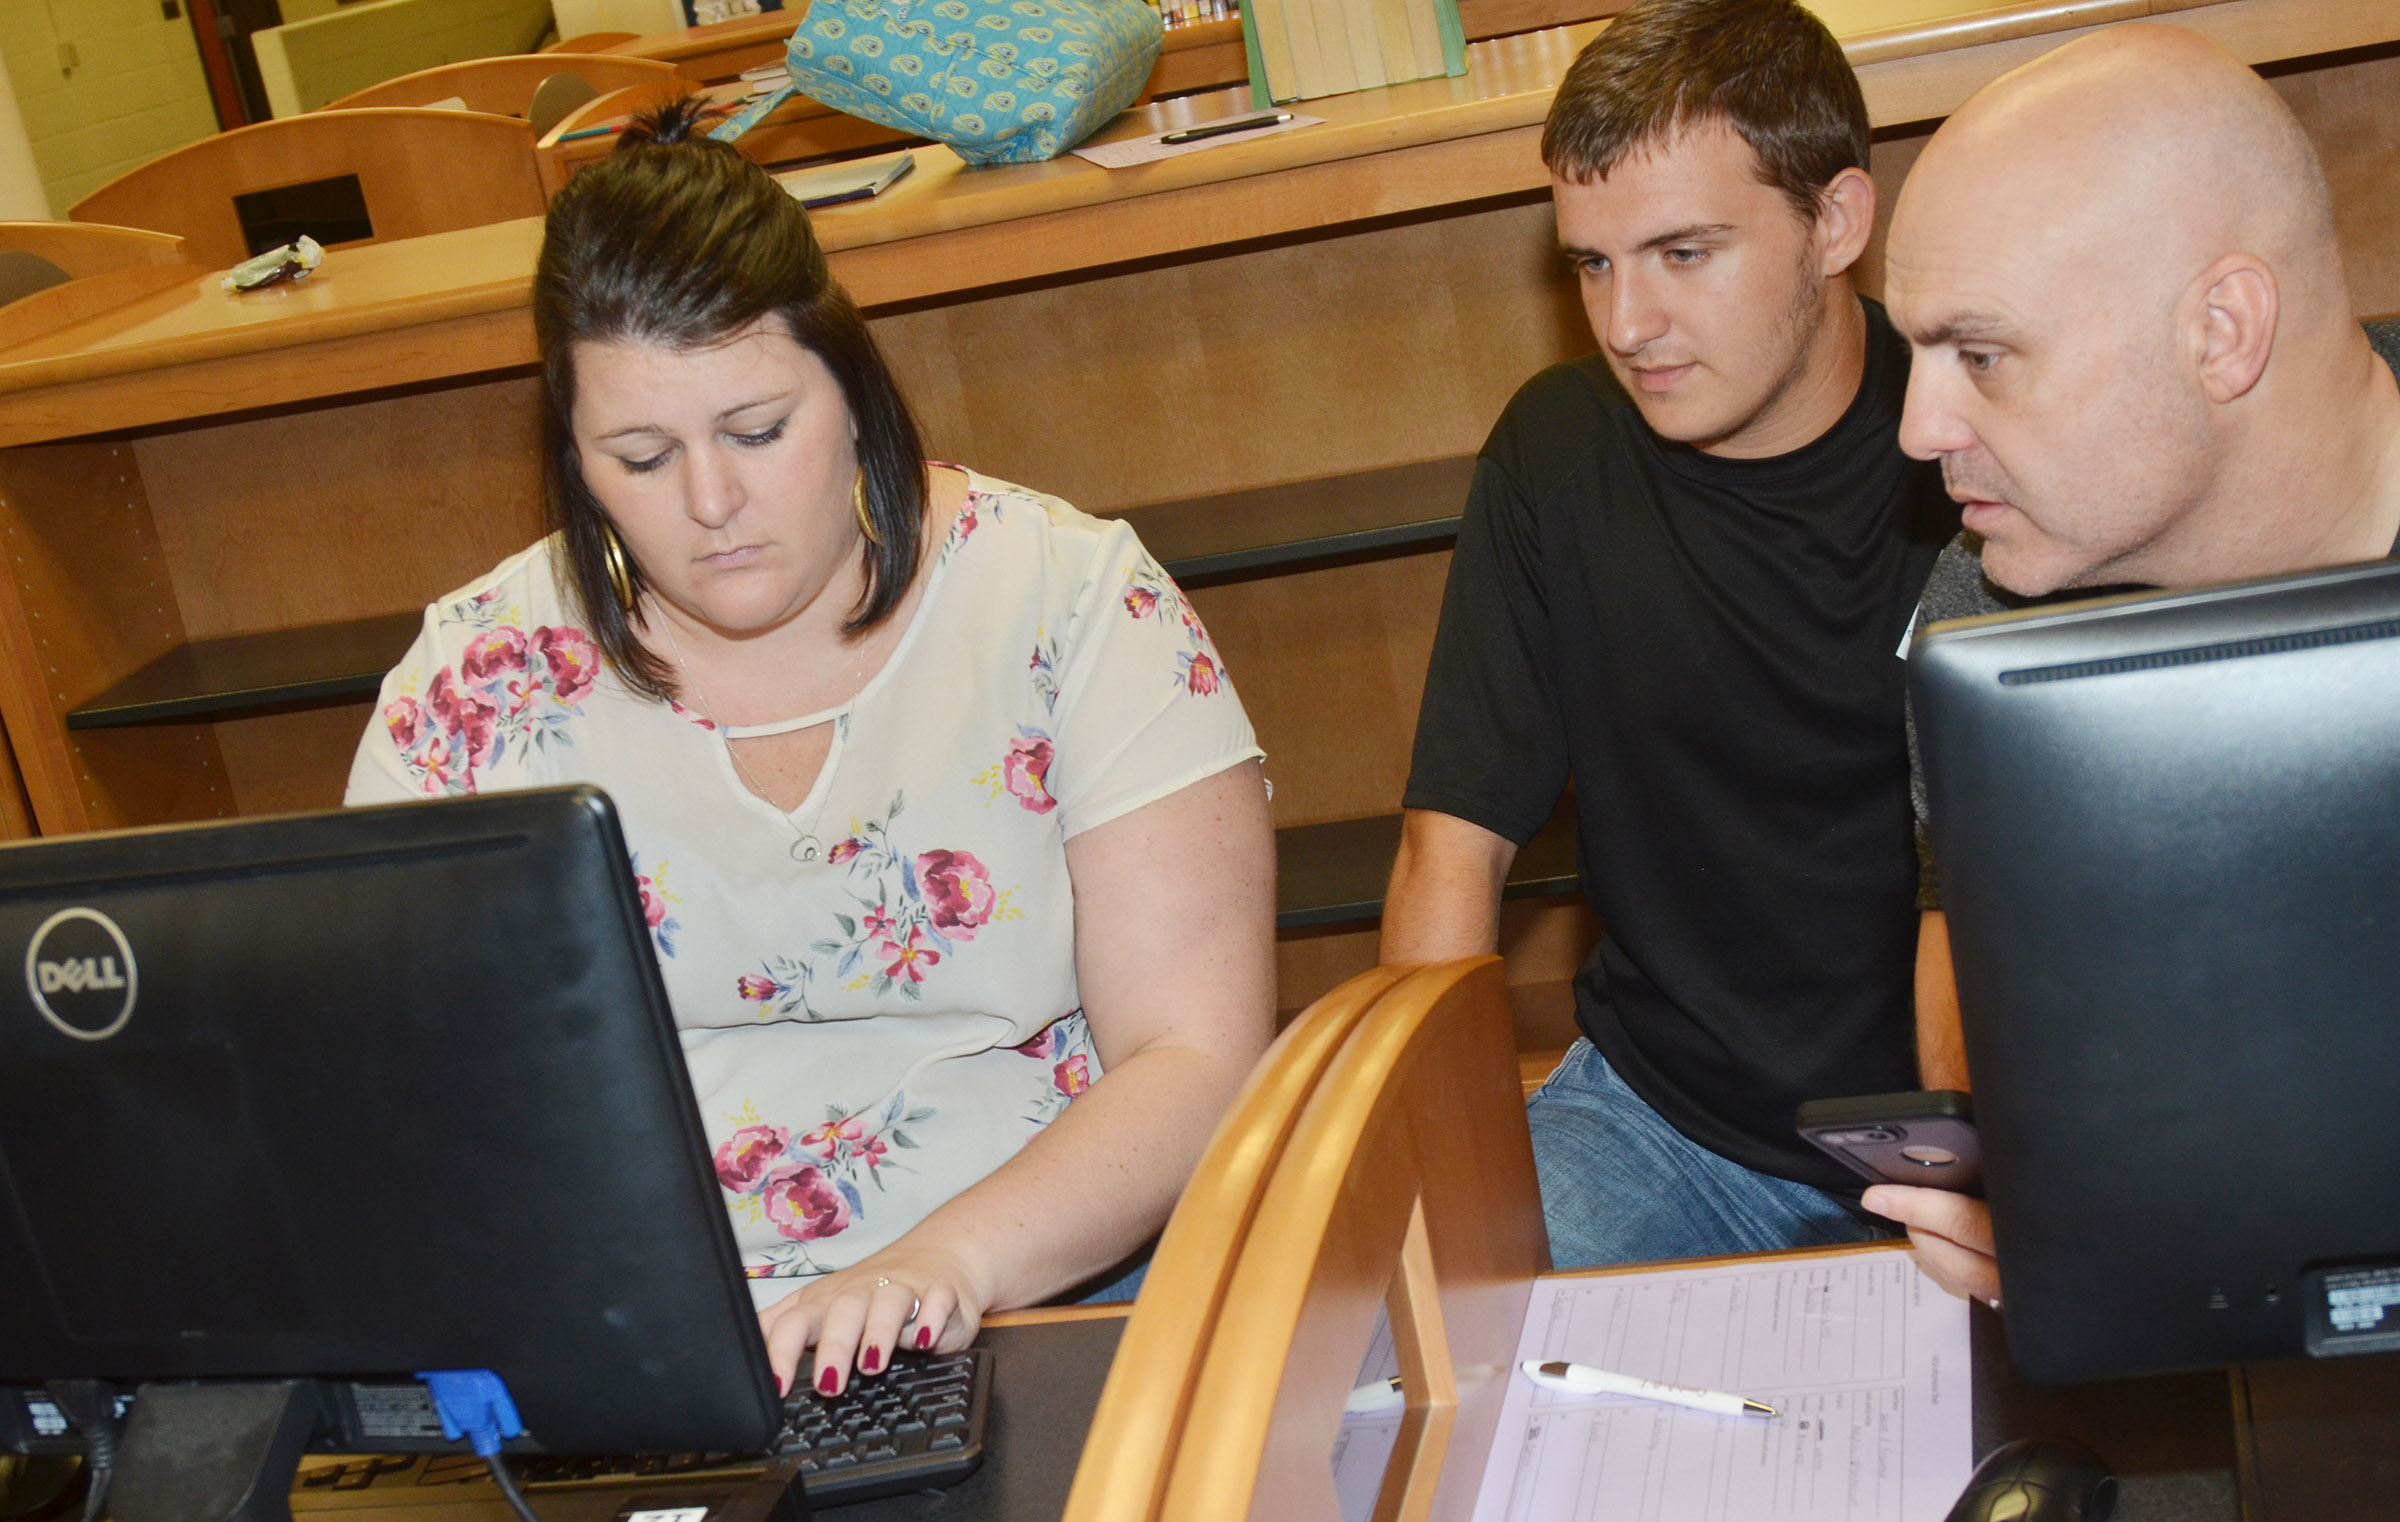 Kentucky Higher Education Assistance Authority representative Audrey Price helps CHS senior Austin Fitzgerald complete his FAFSA with his father Andy.